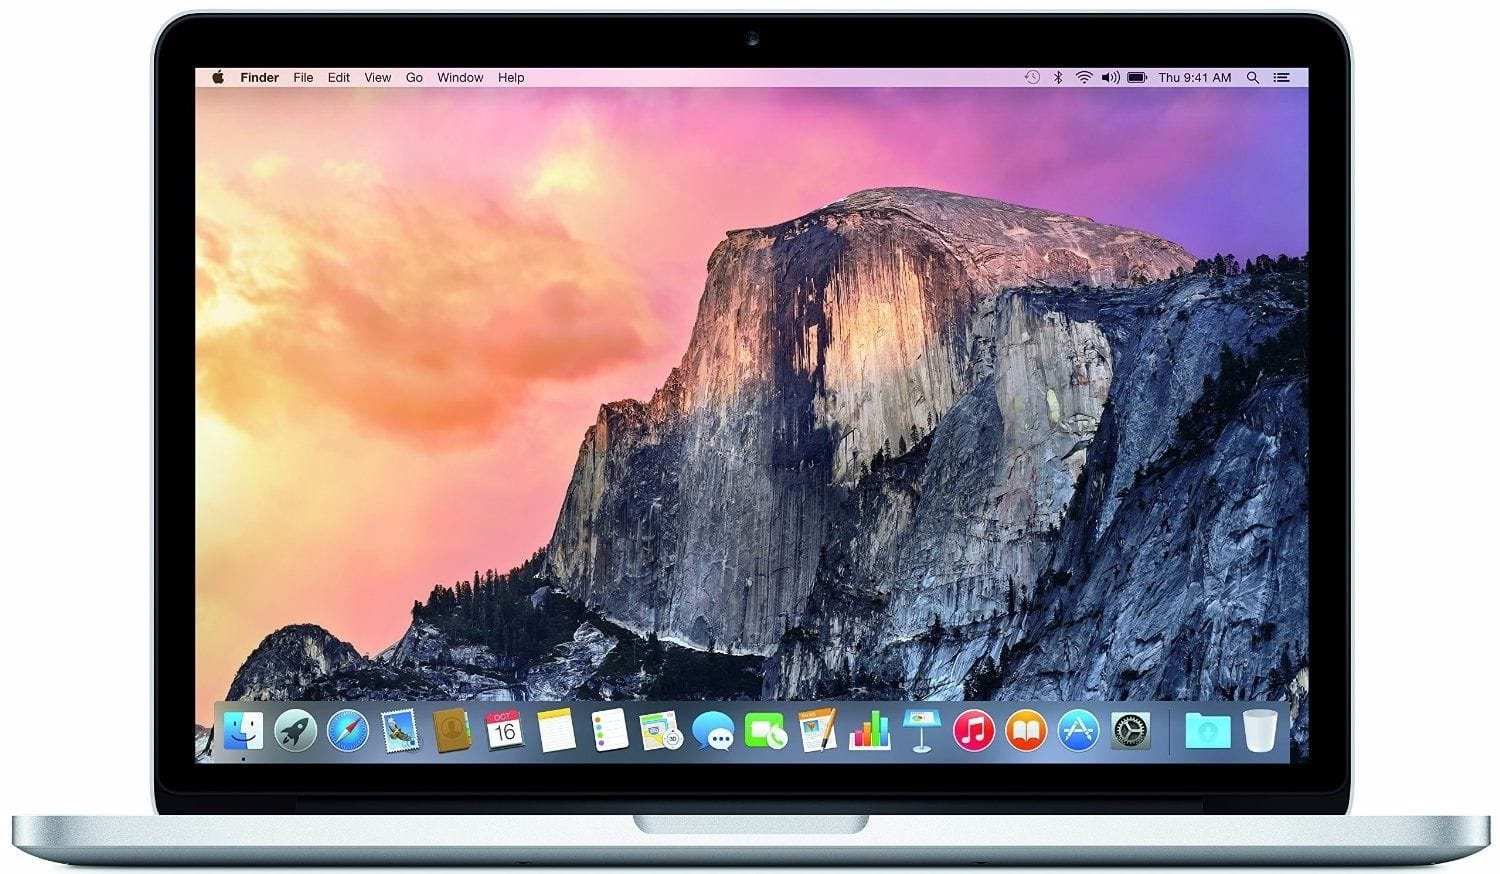 Apple MacBook Pro MF840LL/A 13.3-Inch Laptop with Retina Display $1280 + Free Shipping (eBay Daily Deal)